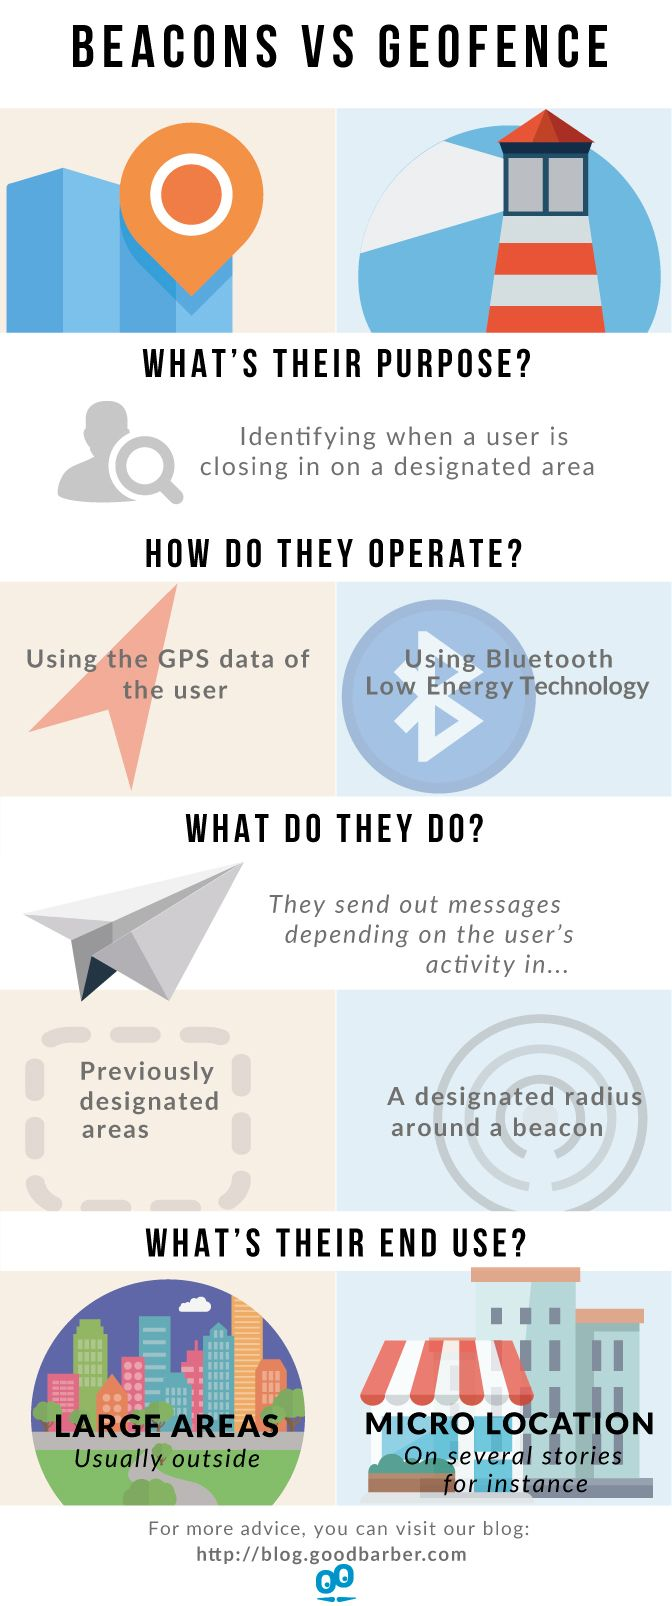 Beacons VS Geofencing (Infographic) #GeoAlerts #geofence #beacon #Infographic